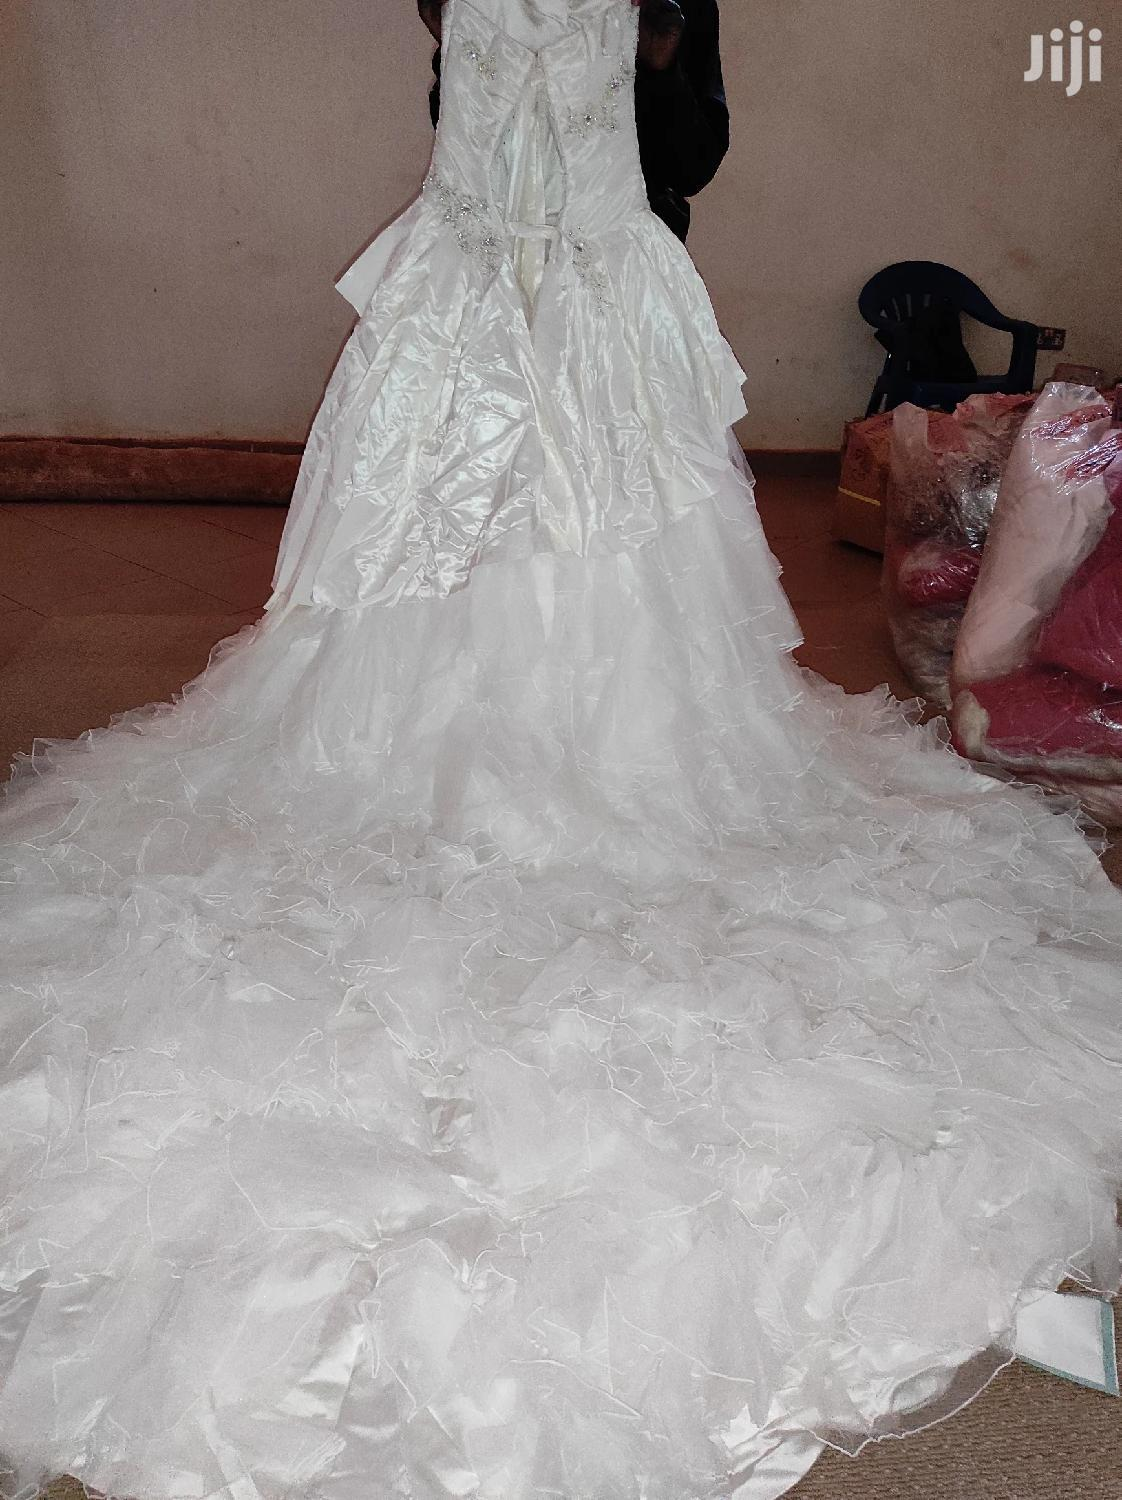 Its Made In London Intunzuri Ivory Dress Size 12 | Wedding Wear & Accessories for sale in Kampala, Central Region, Uganda